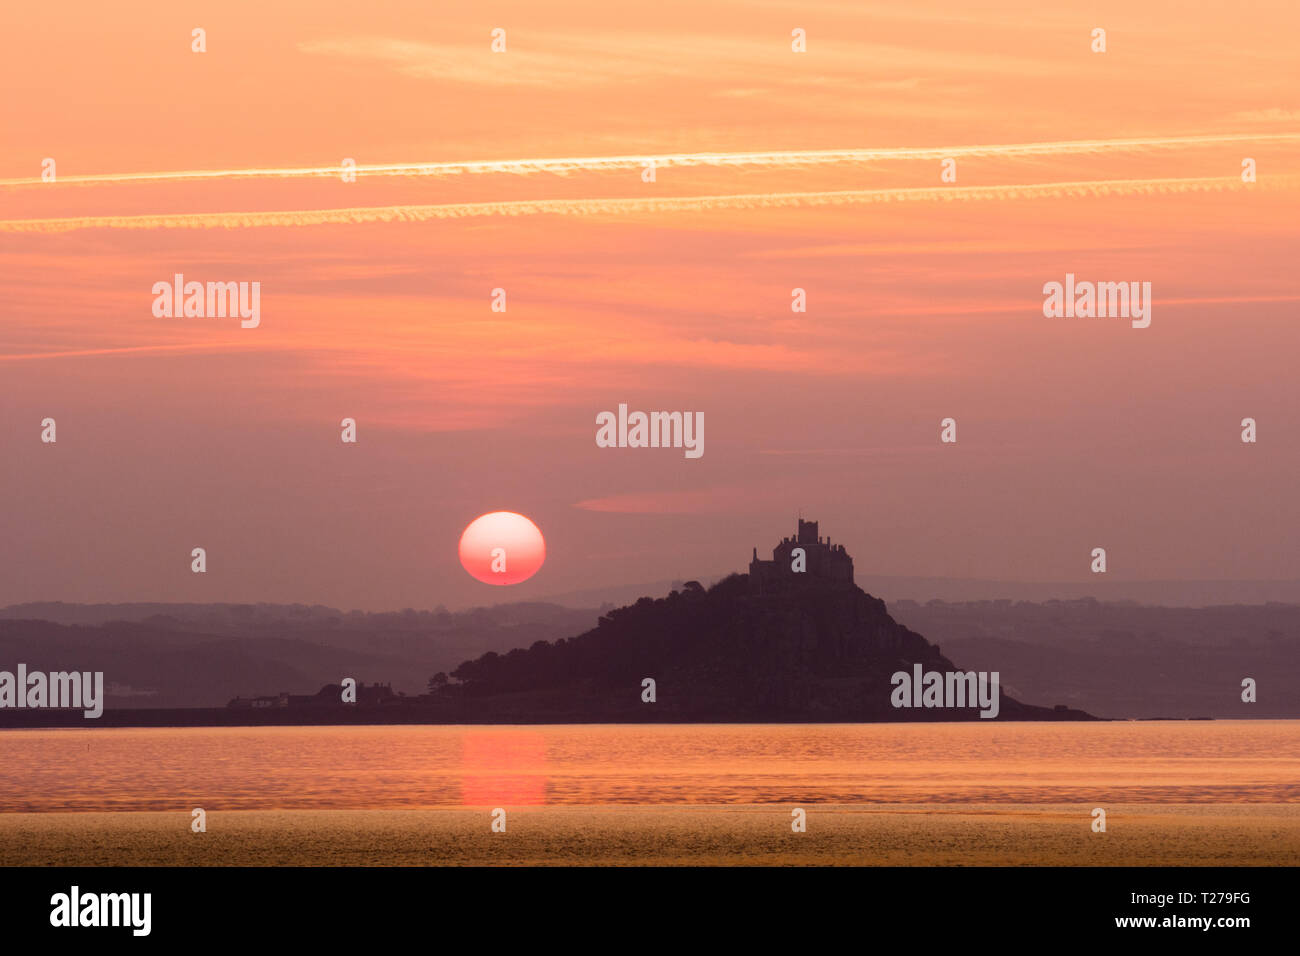 Penzance, Cornwall, UK. 31st March 2019. UK Weather. Another glorious sunrise at Penzance, as the clocks go forwards for British Summer Time. Credit: Simon Maycock/Alamy Live News Stock Photo